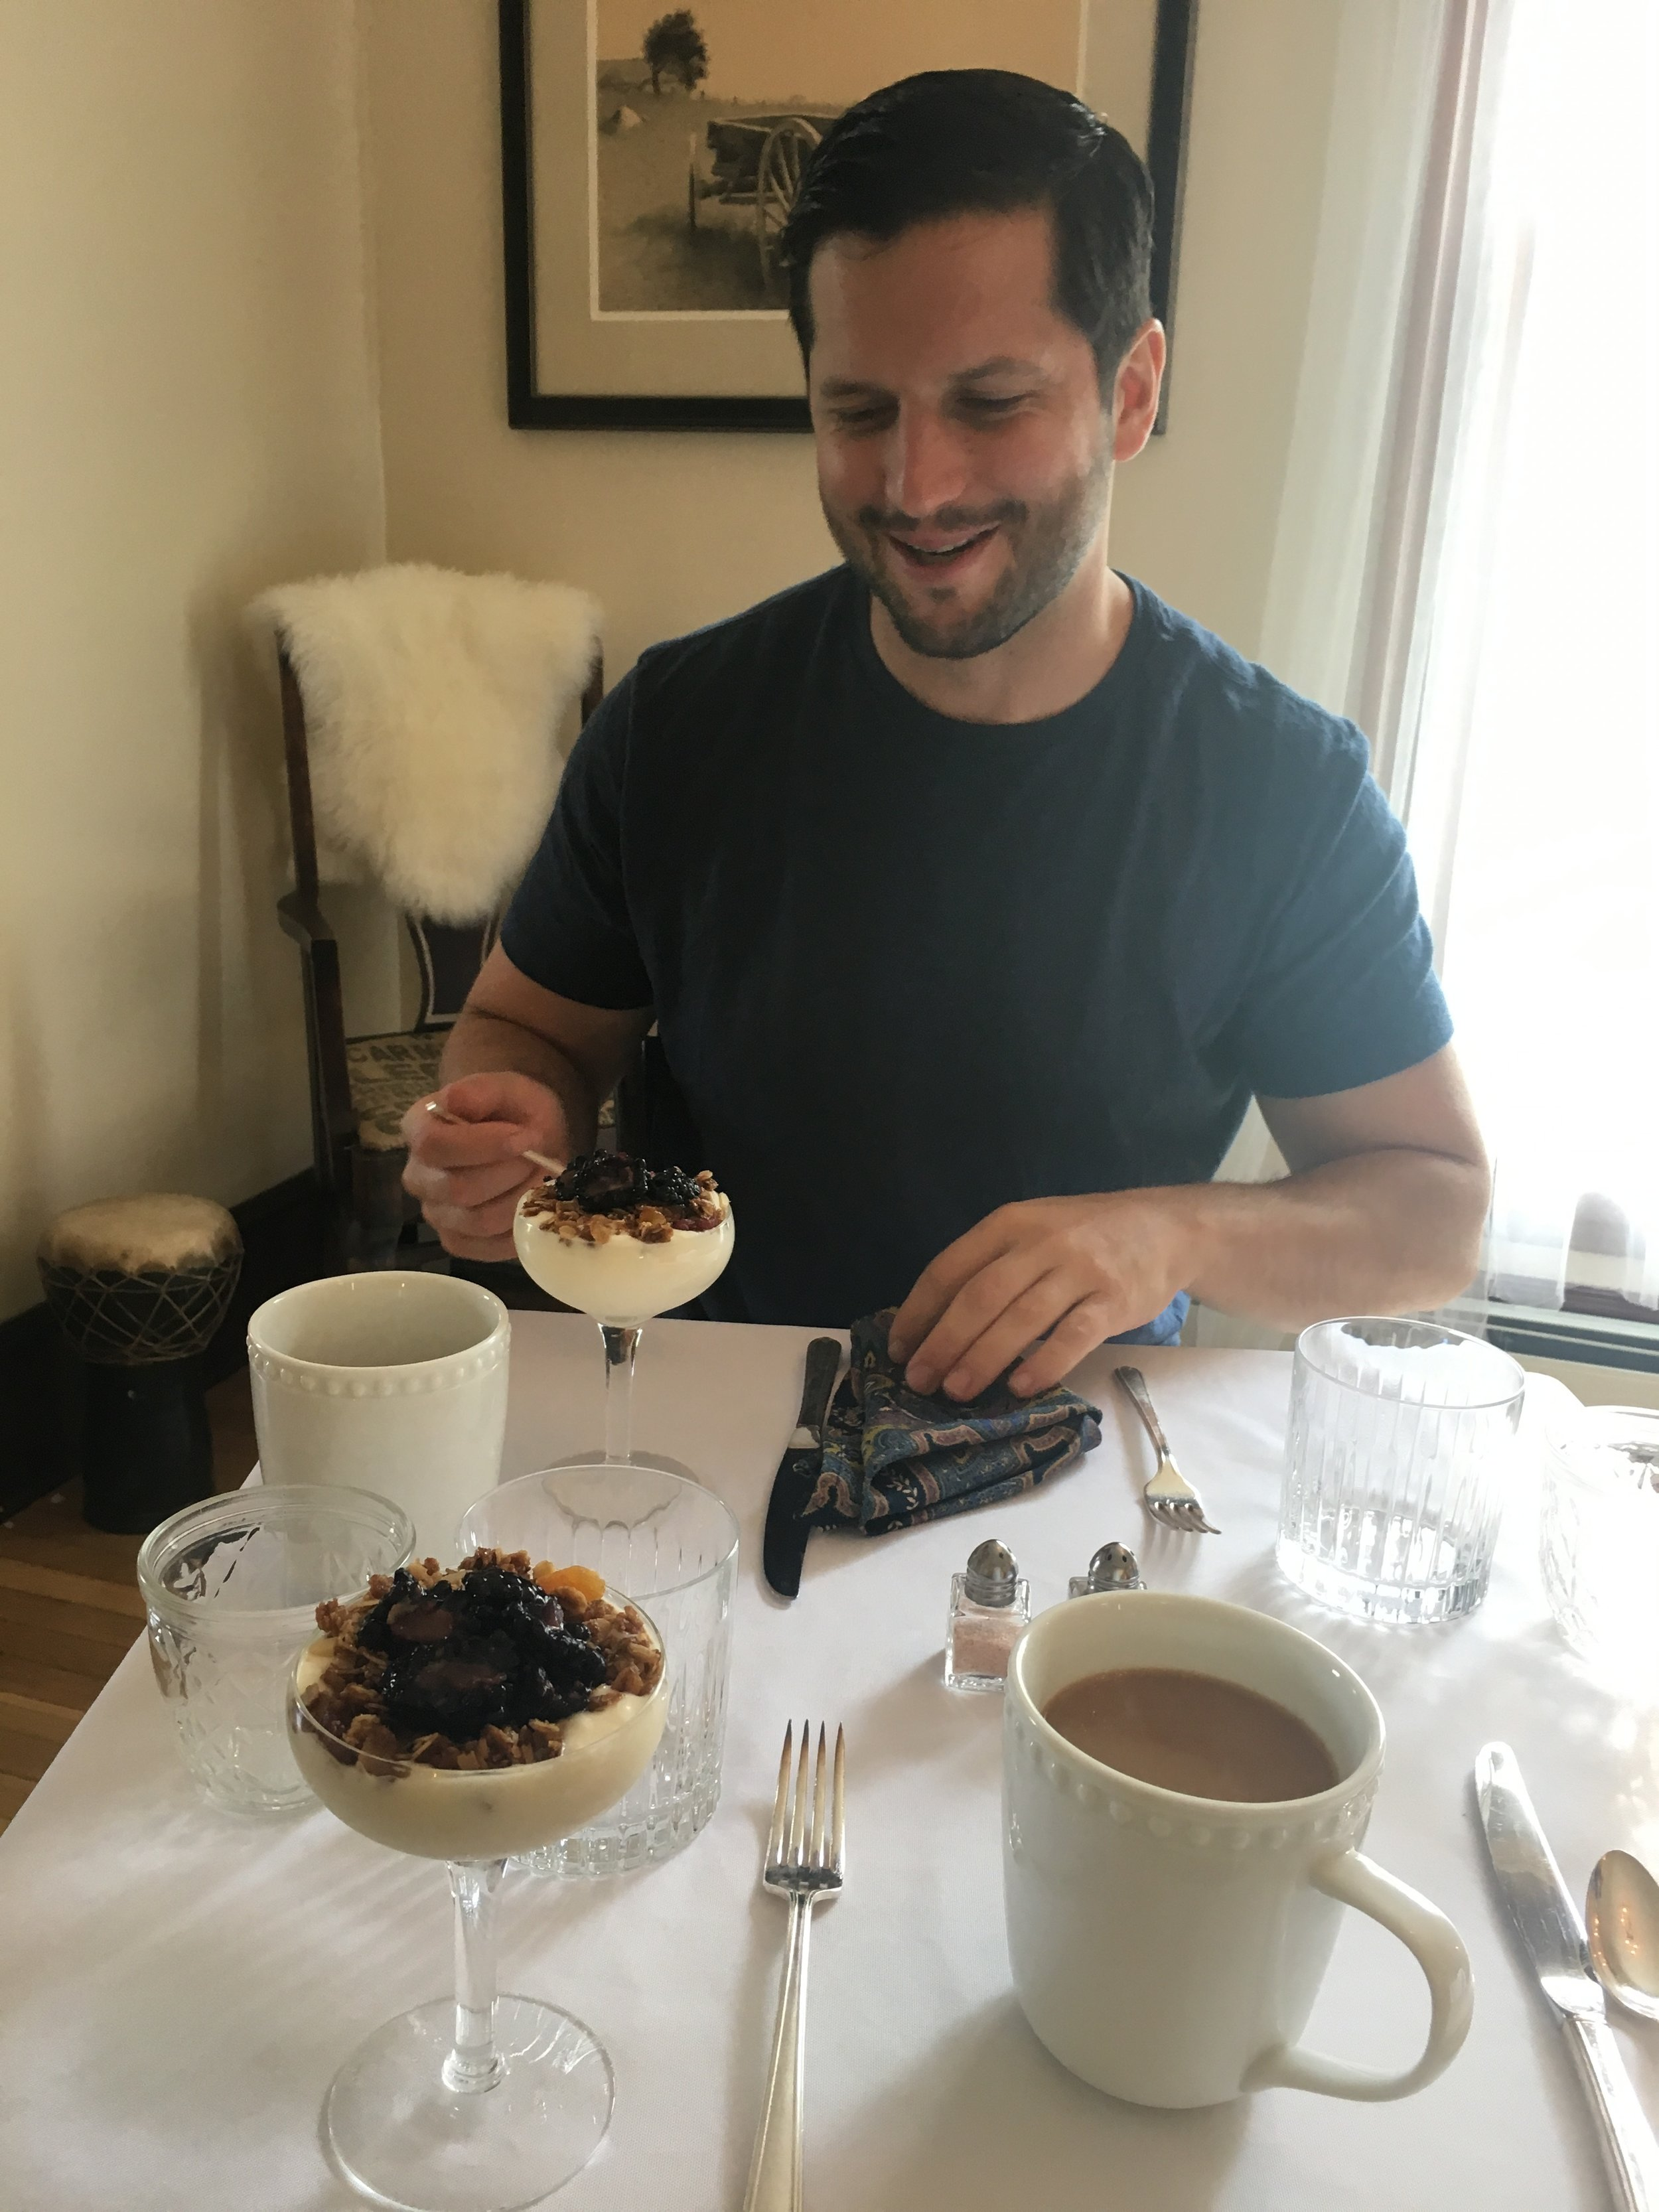 My husband, enjoying breakfast!